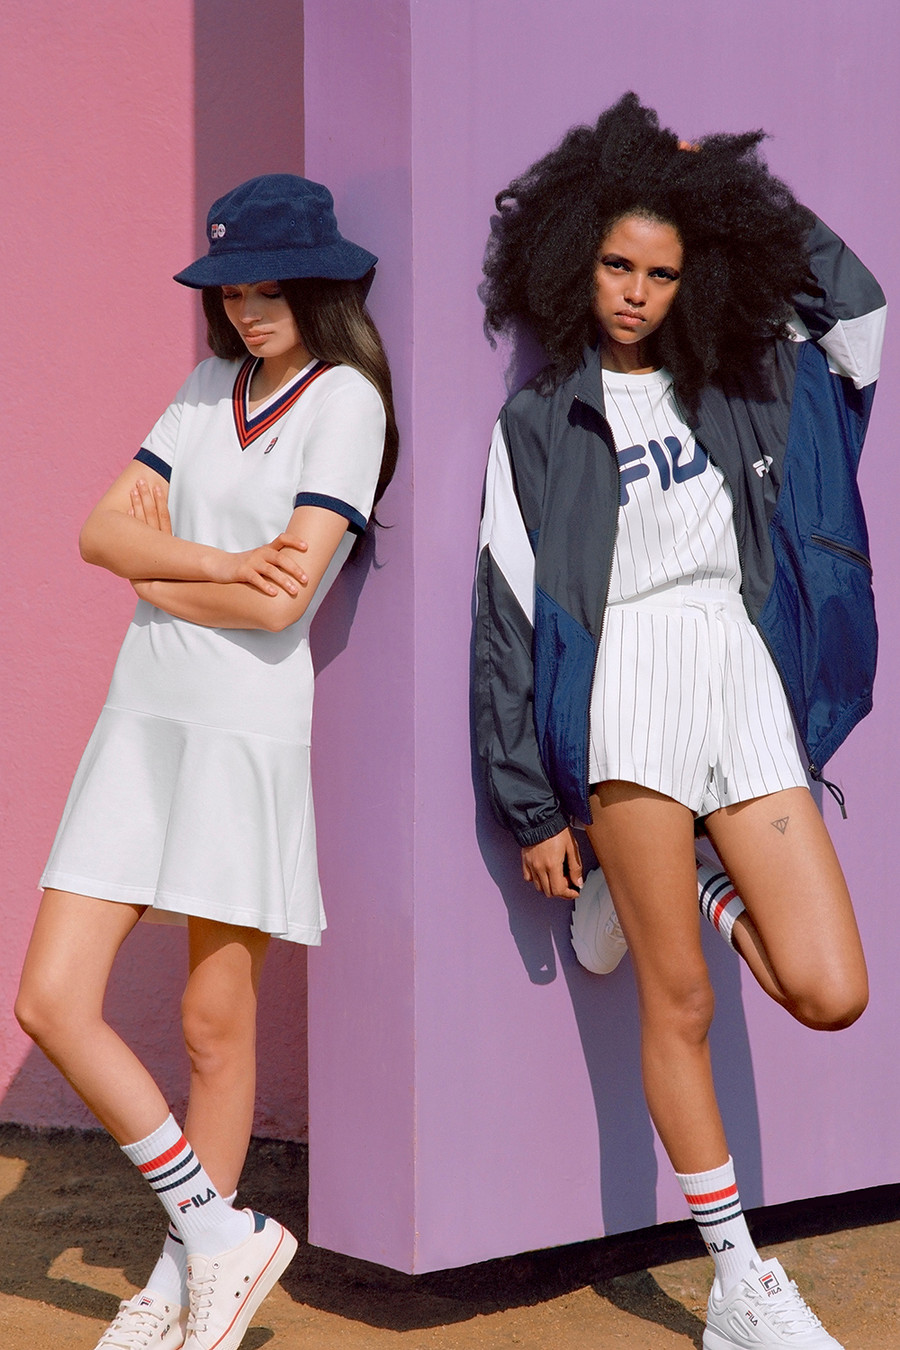 Another look from Fila's 2018 Lookbook